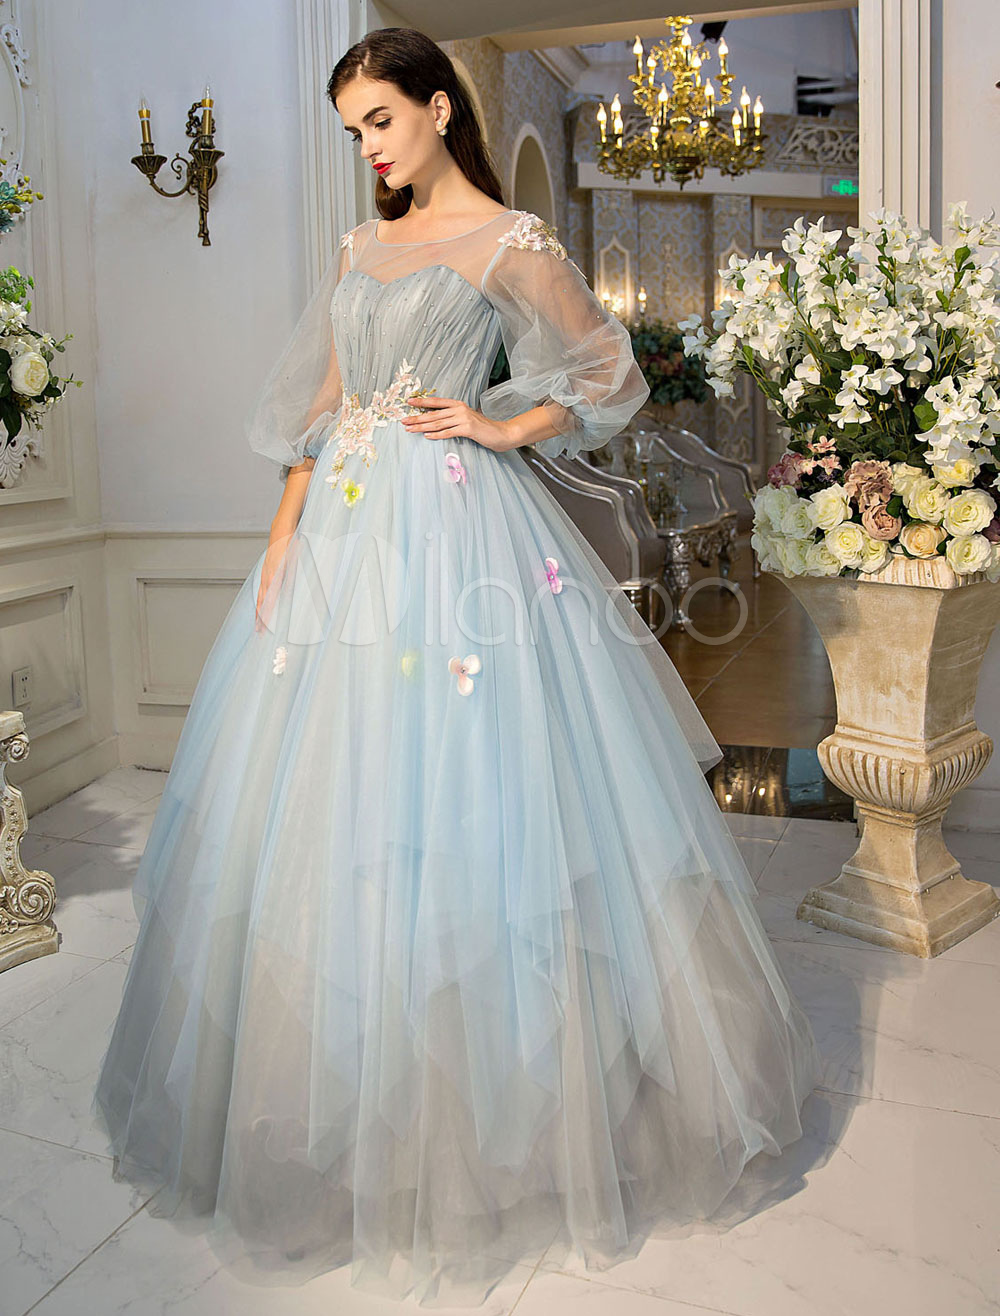 Princess Prom Dresses Luxury Long Sleeve Illusion Tulle Lace Flowers ...